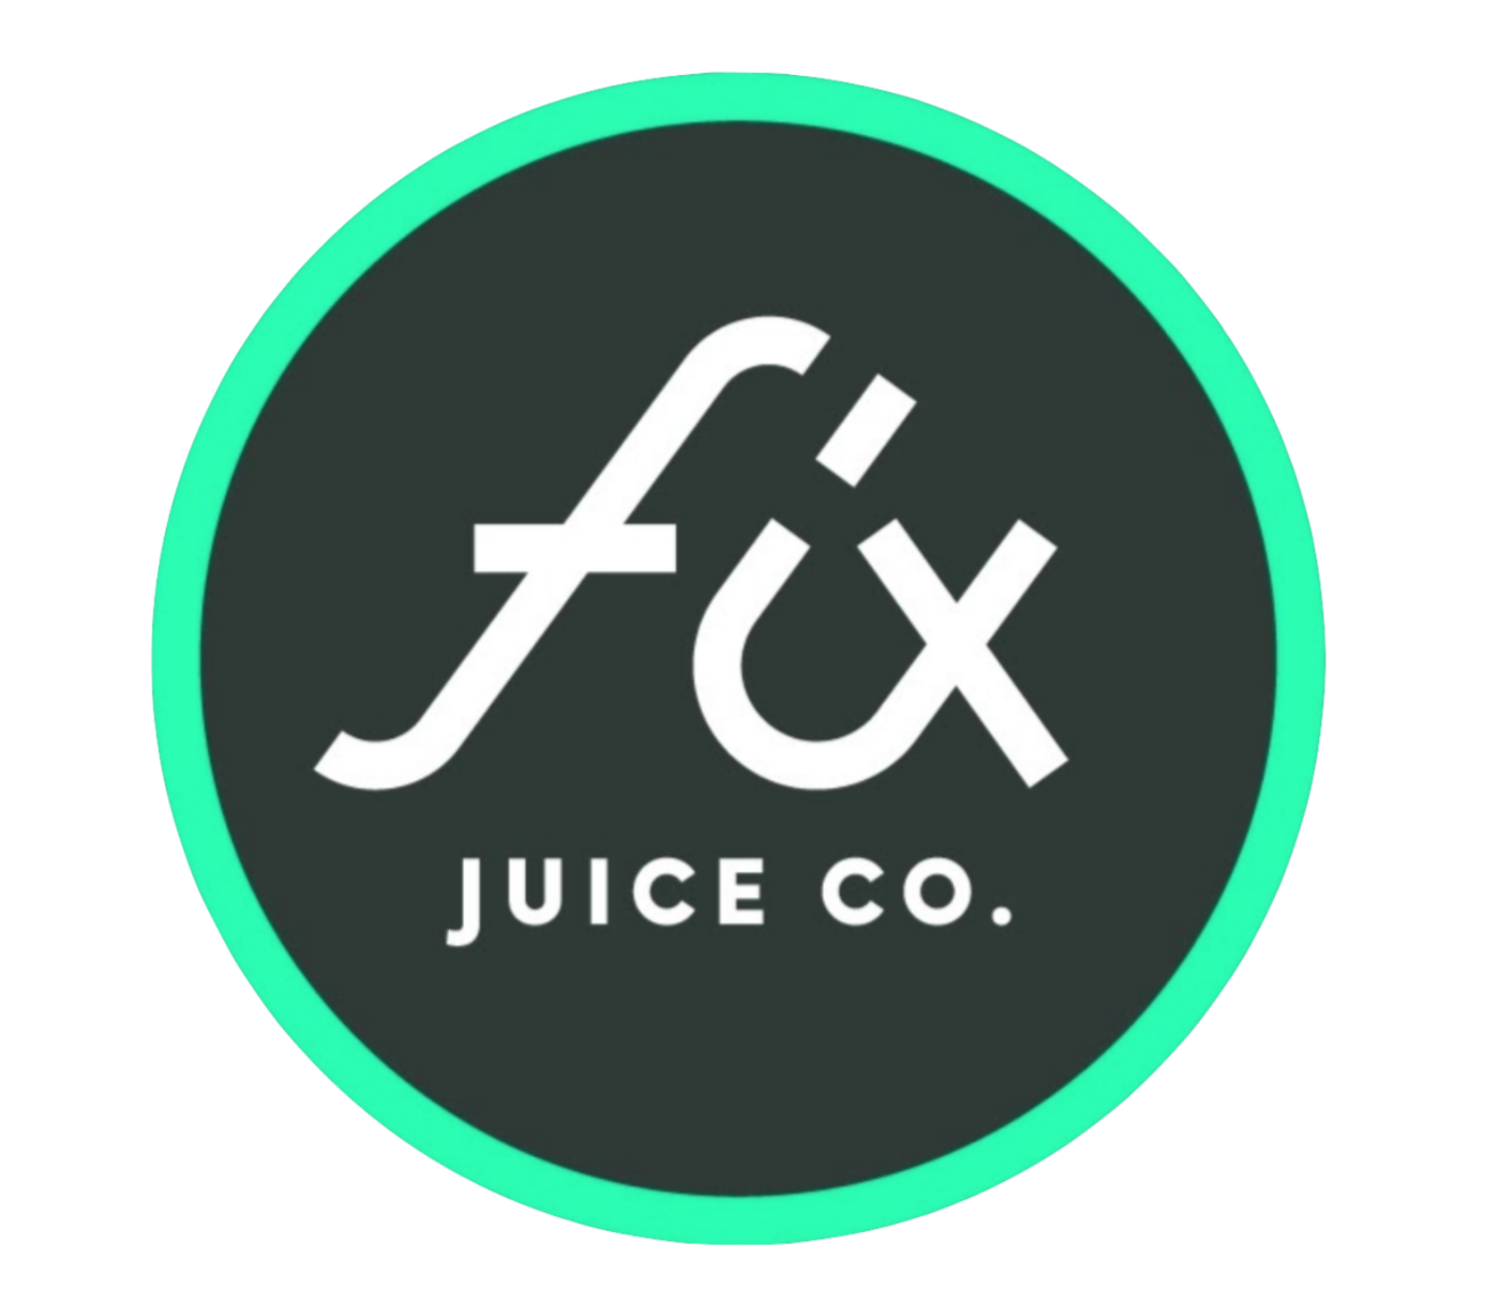 Fix Juice Co.